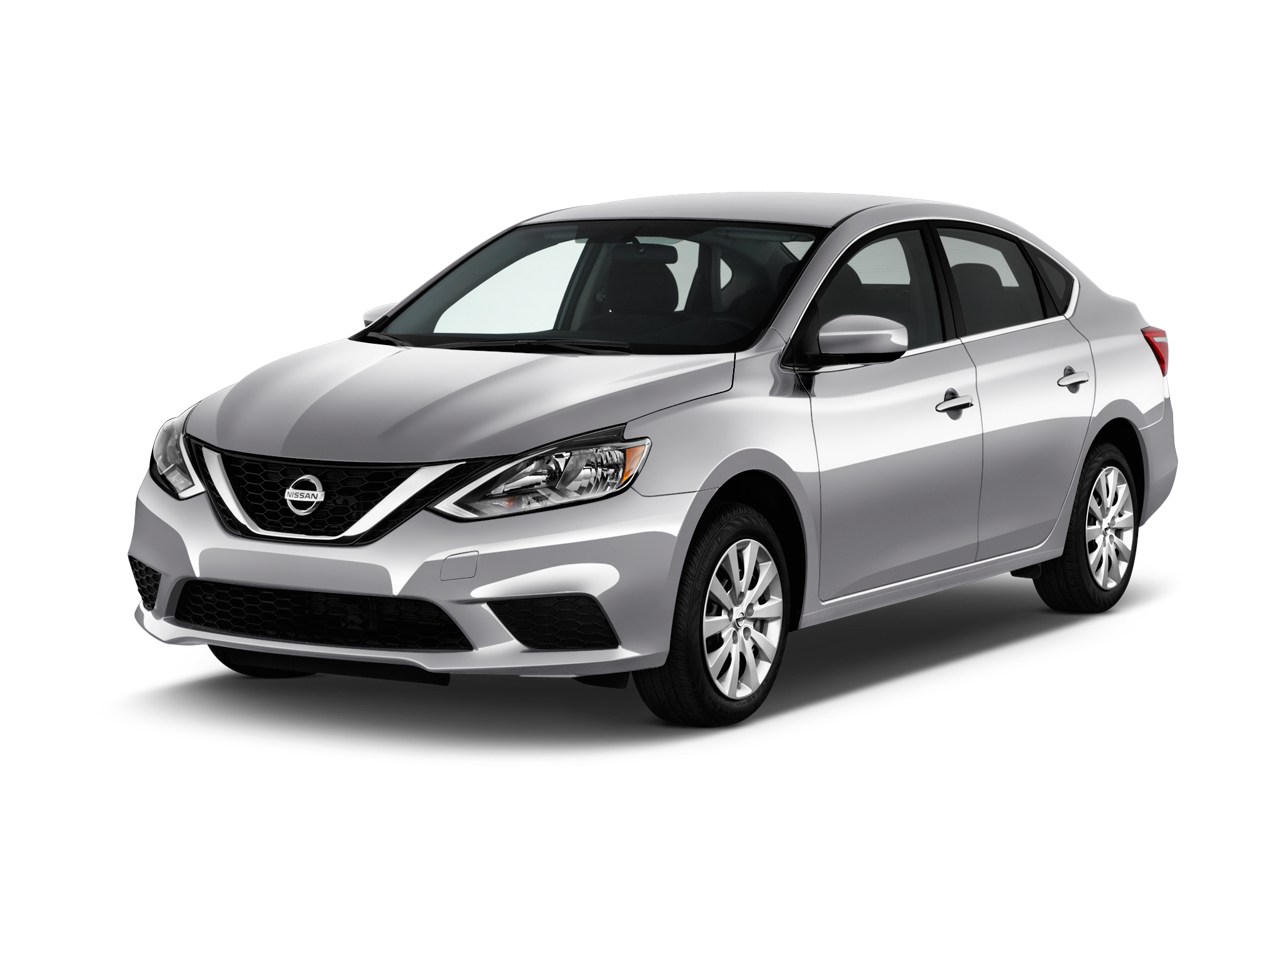 new 2017 nissan sentra s near elgin il mcgrath nissan. Black Bedroom Furniture Sets. Home Design Ideas